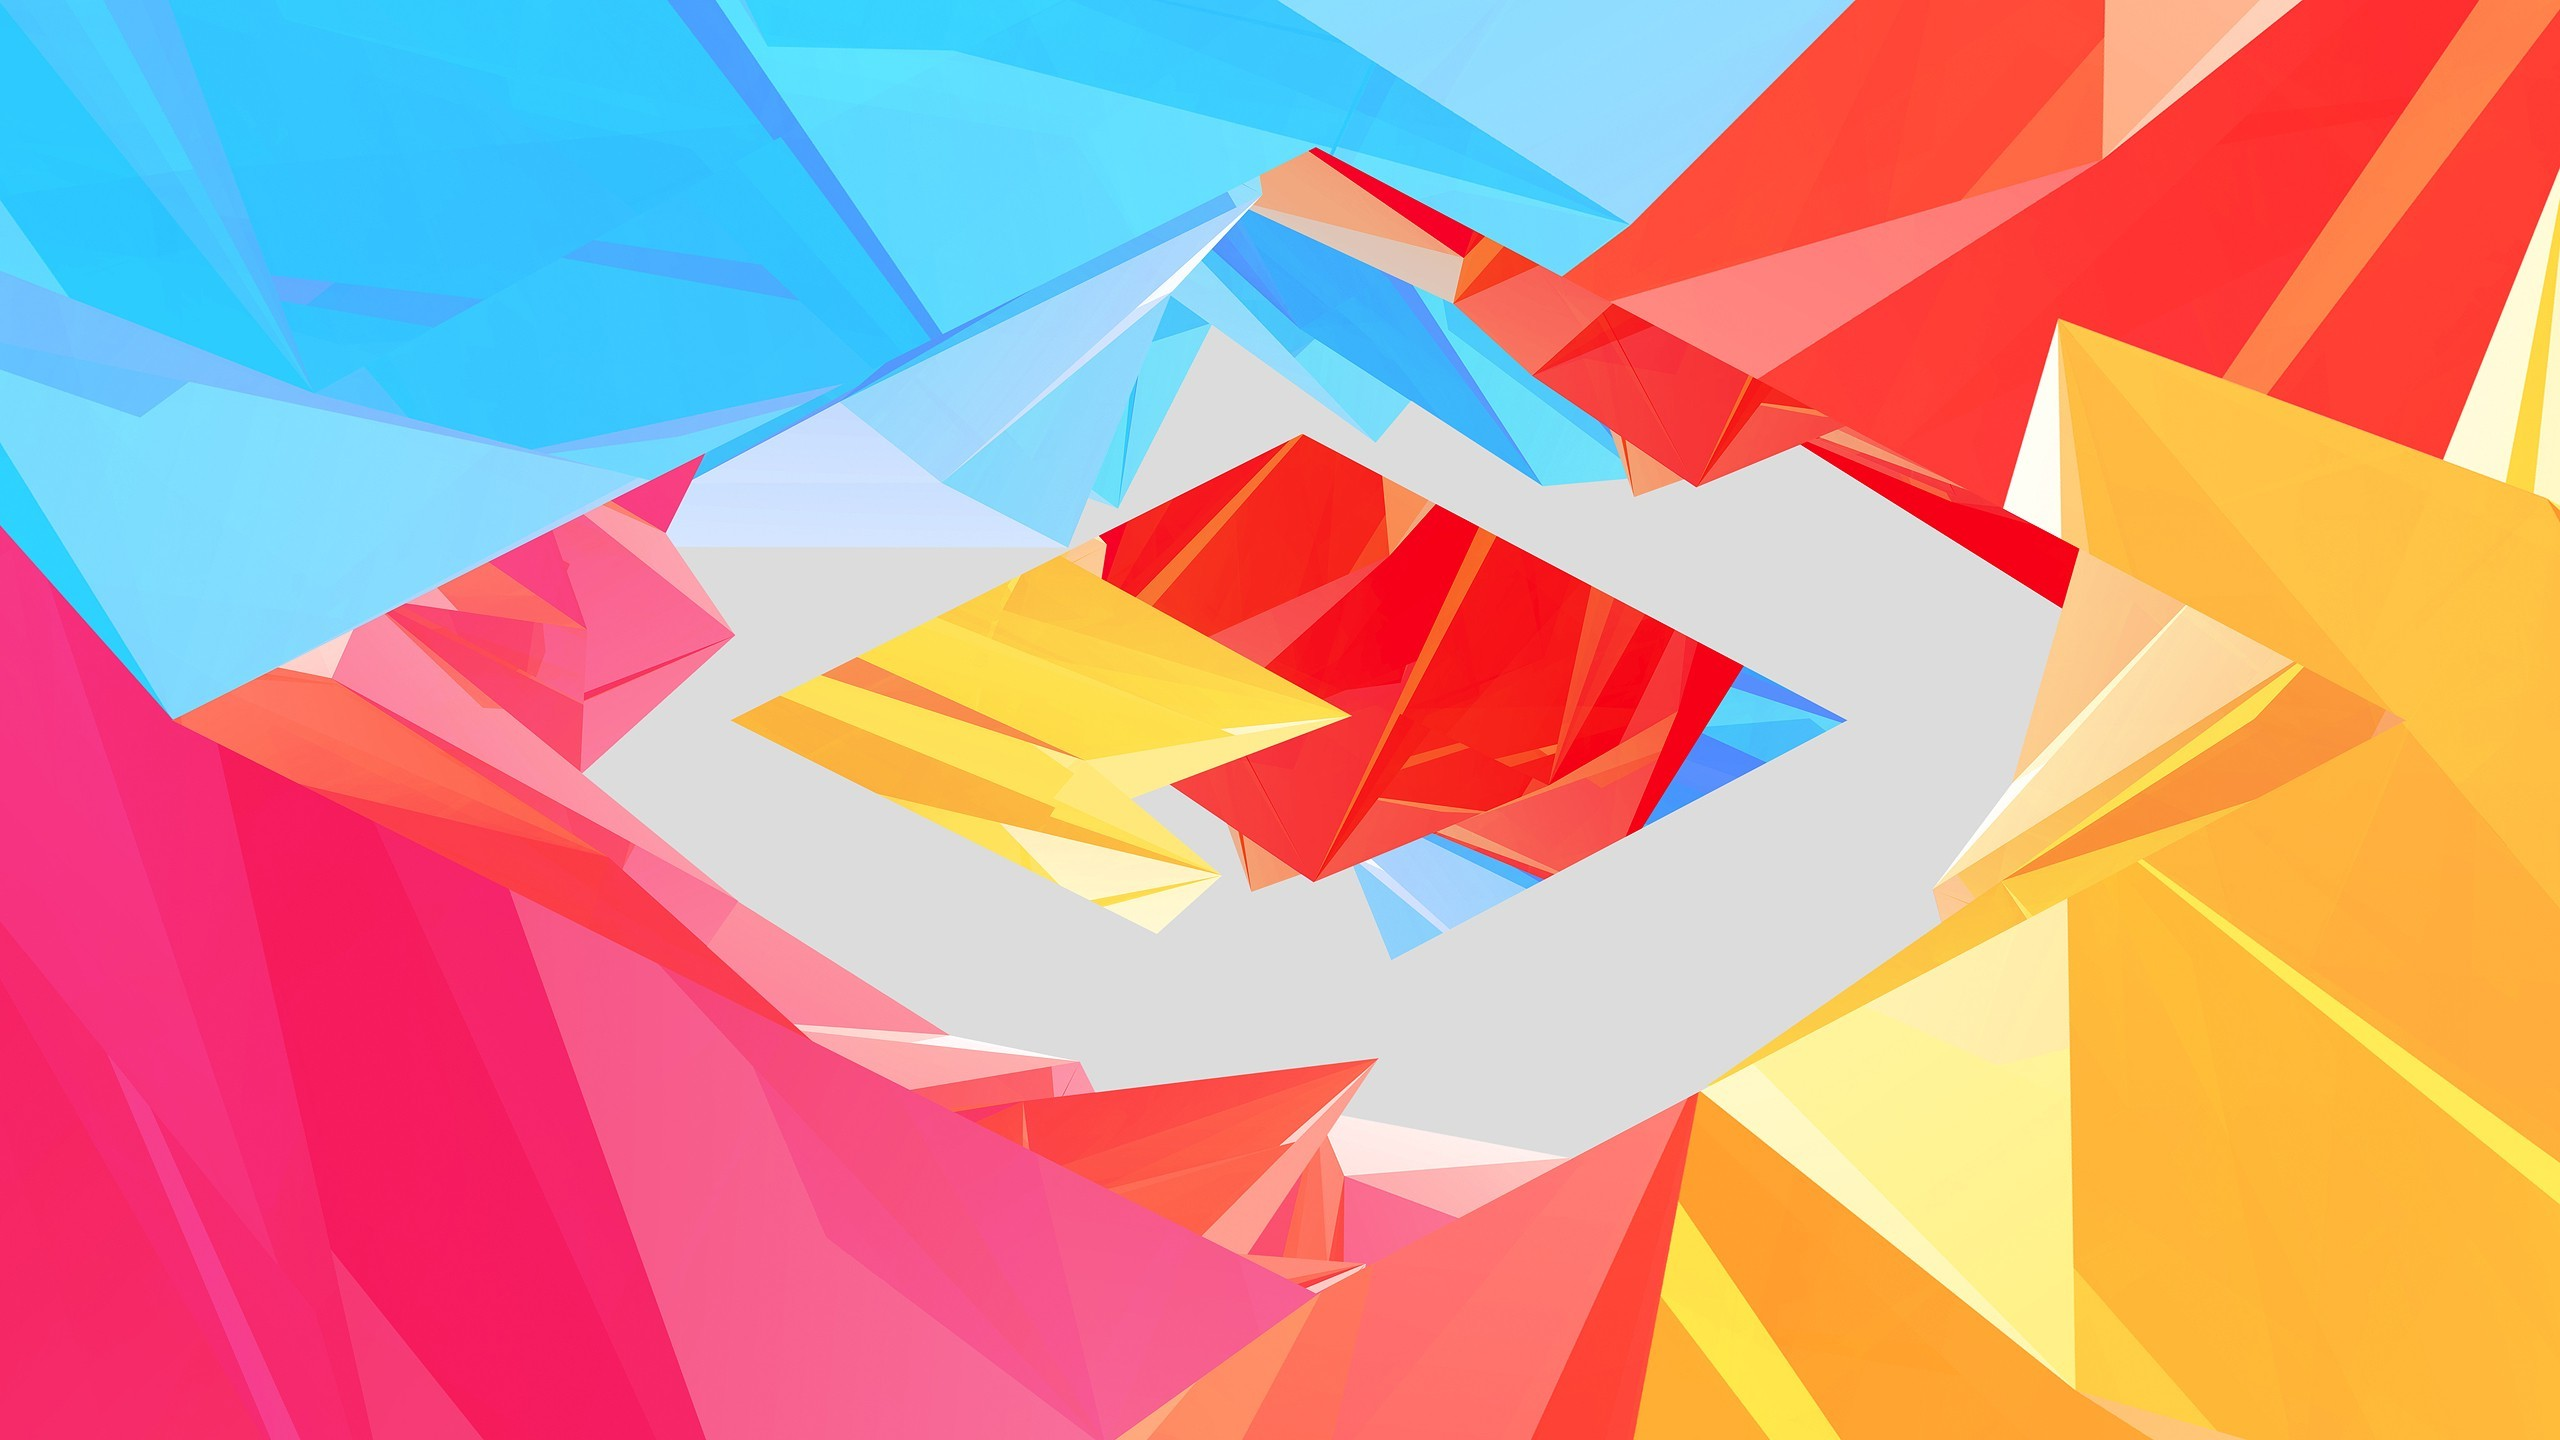 shapes wallpapers 70 images